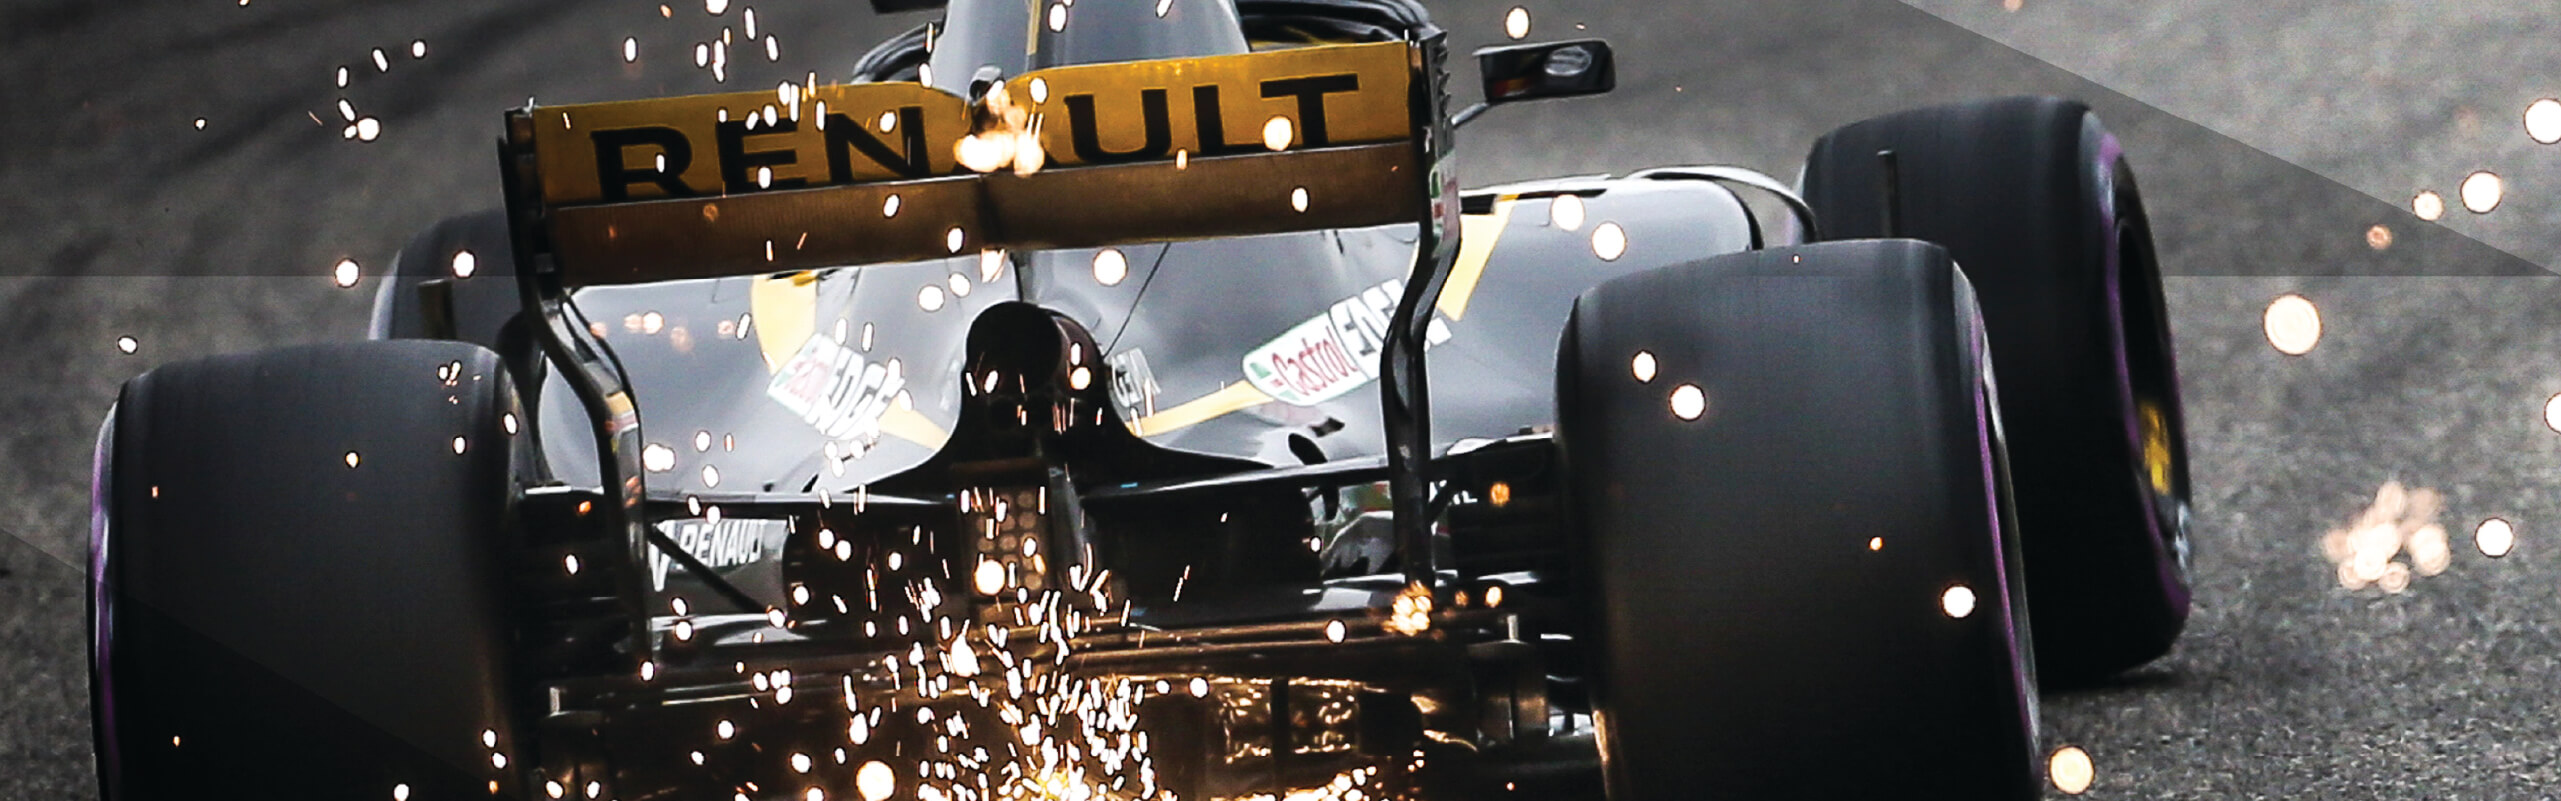 Renault F1 team sports focus page and why they choose Roland DG